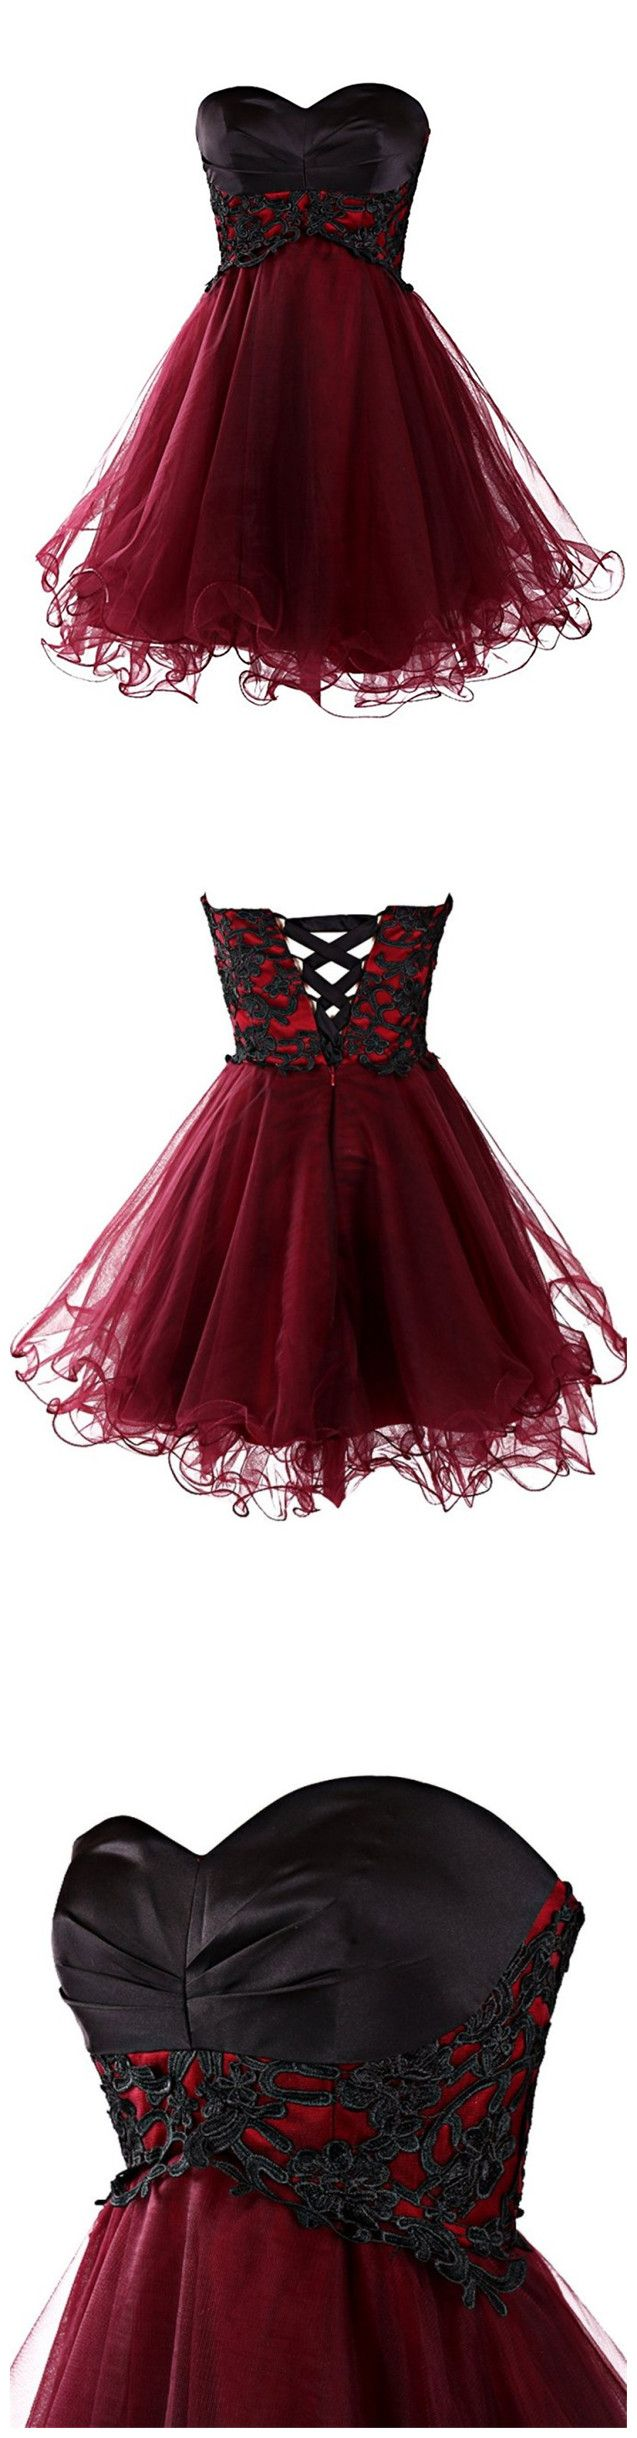 Burgunder Homecoming Kleider Kurze Ballkleider von mfprom – ivodresses–Homecoming dresses Cocktail dress